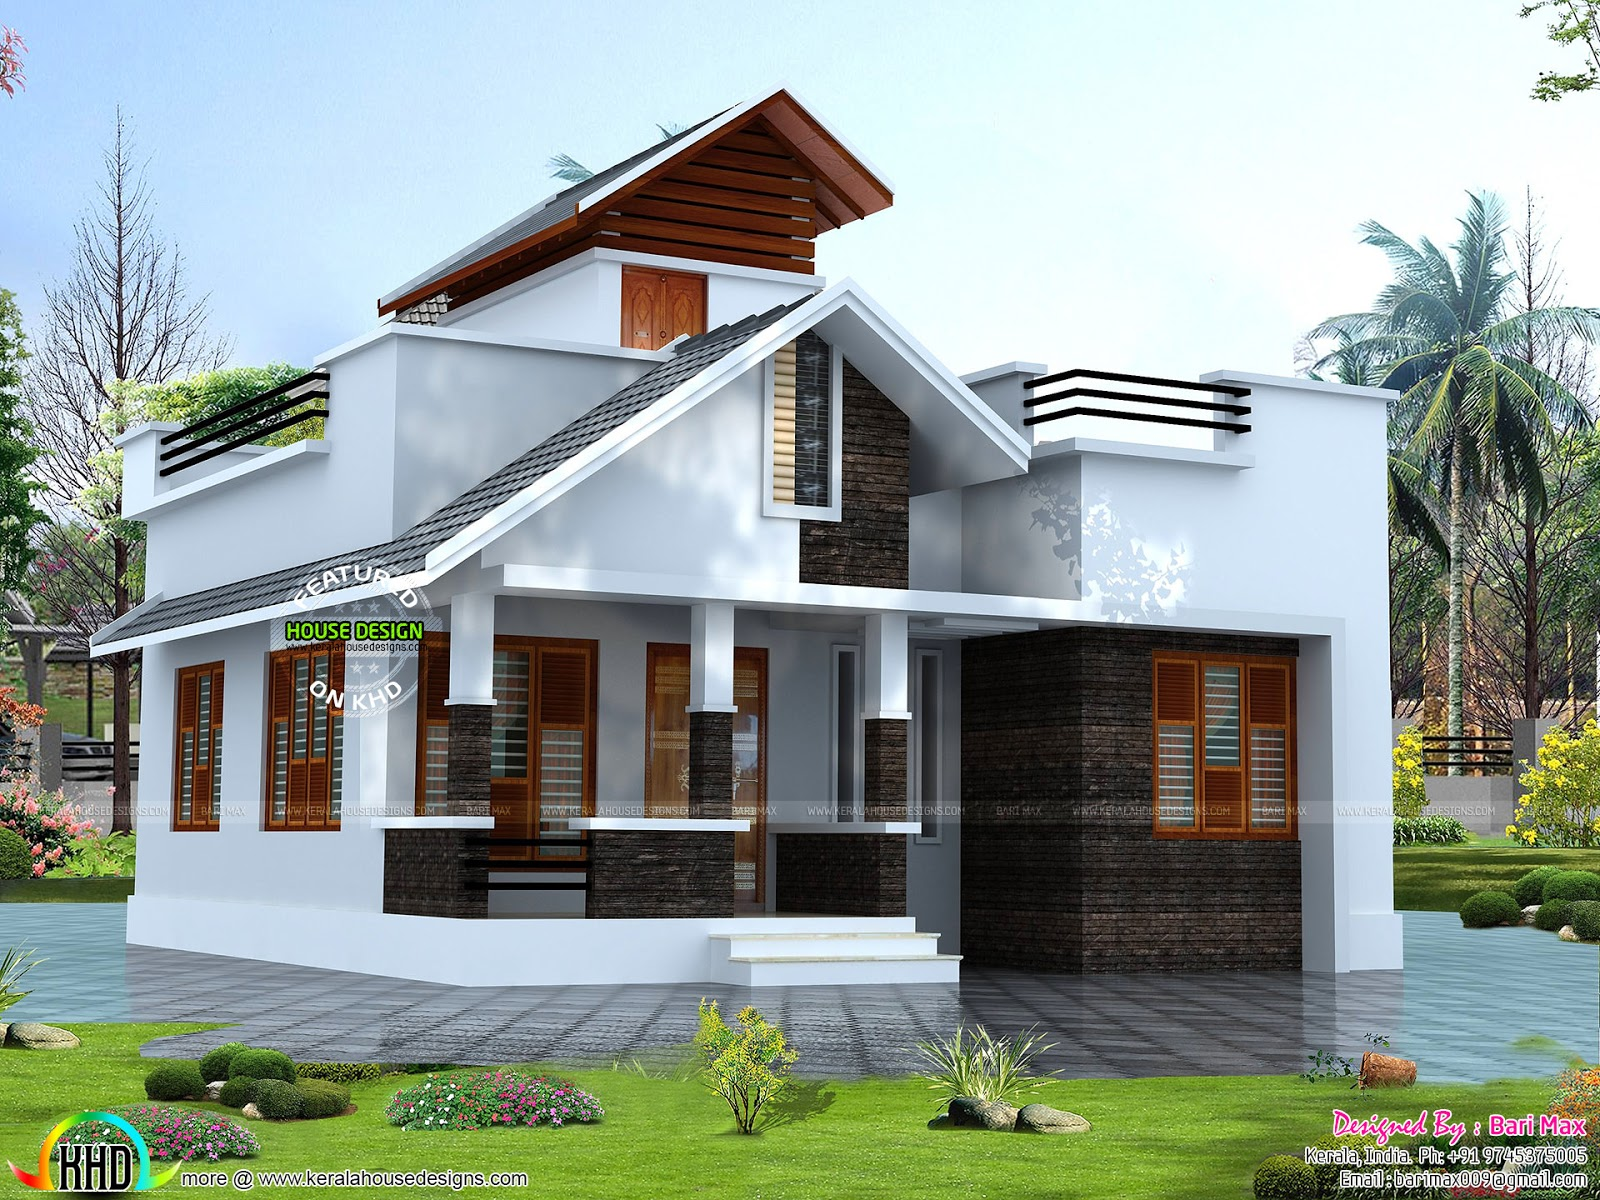 Rs 12 lakh house architecture - Kerala home design and ...